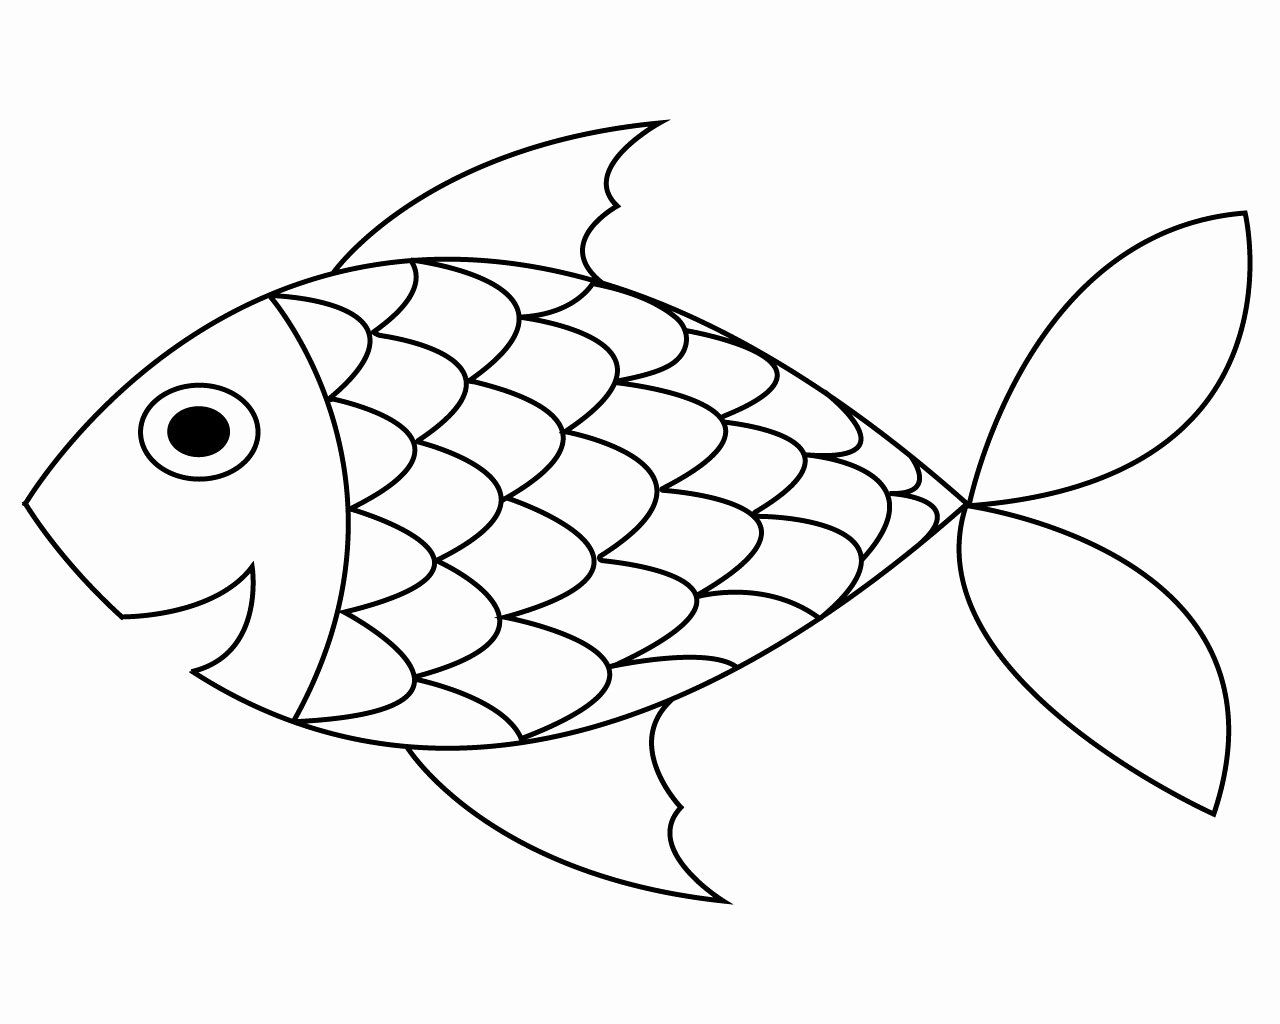 Printable Fish Coloring Pages Fresh Free Printable Fish Coloring Pages For Your Lovely Toddlers Fish Coloring Page Fish Printables Rainbow Fish Coloring Page